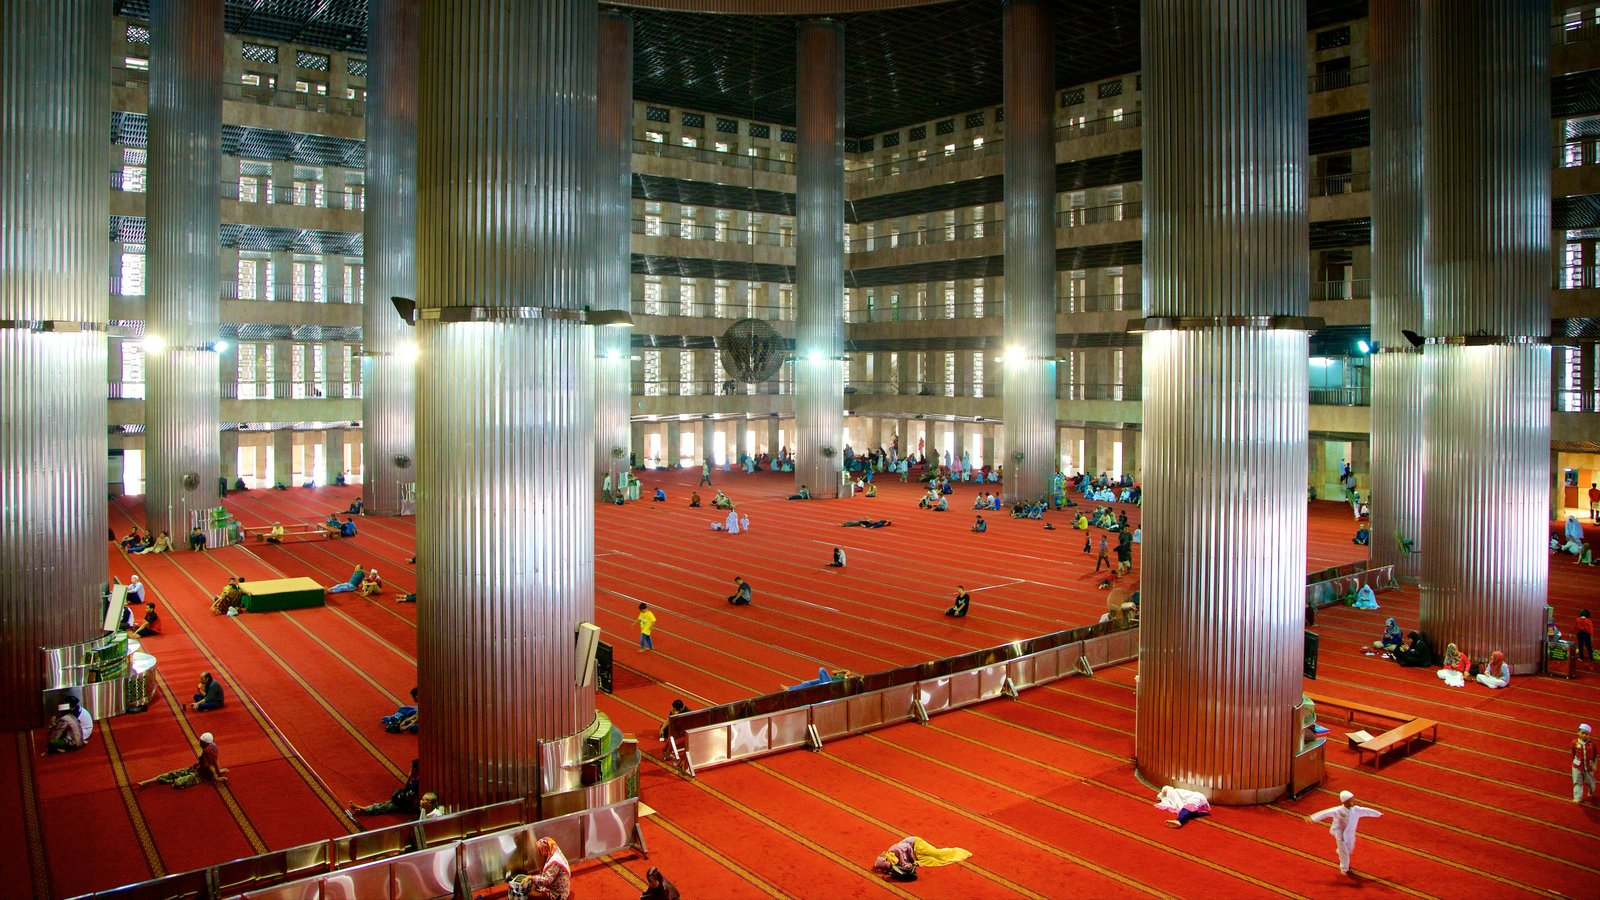 Istiqlal Mosque showing interior views, heritage architecture and modern architecture